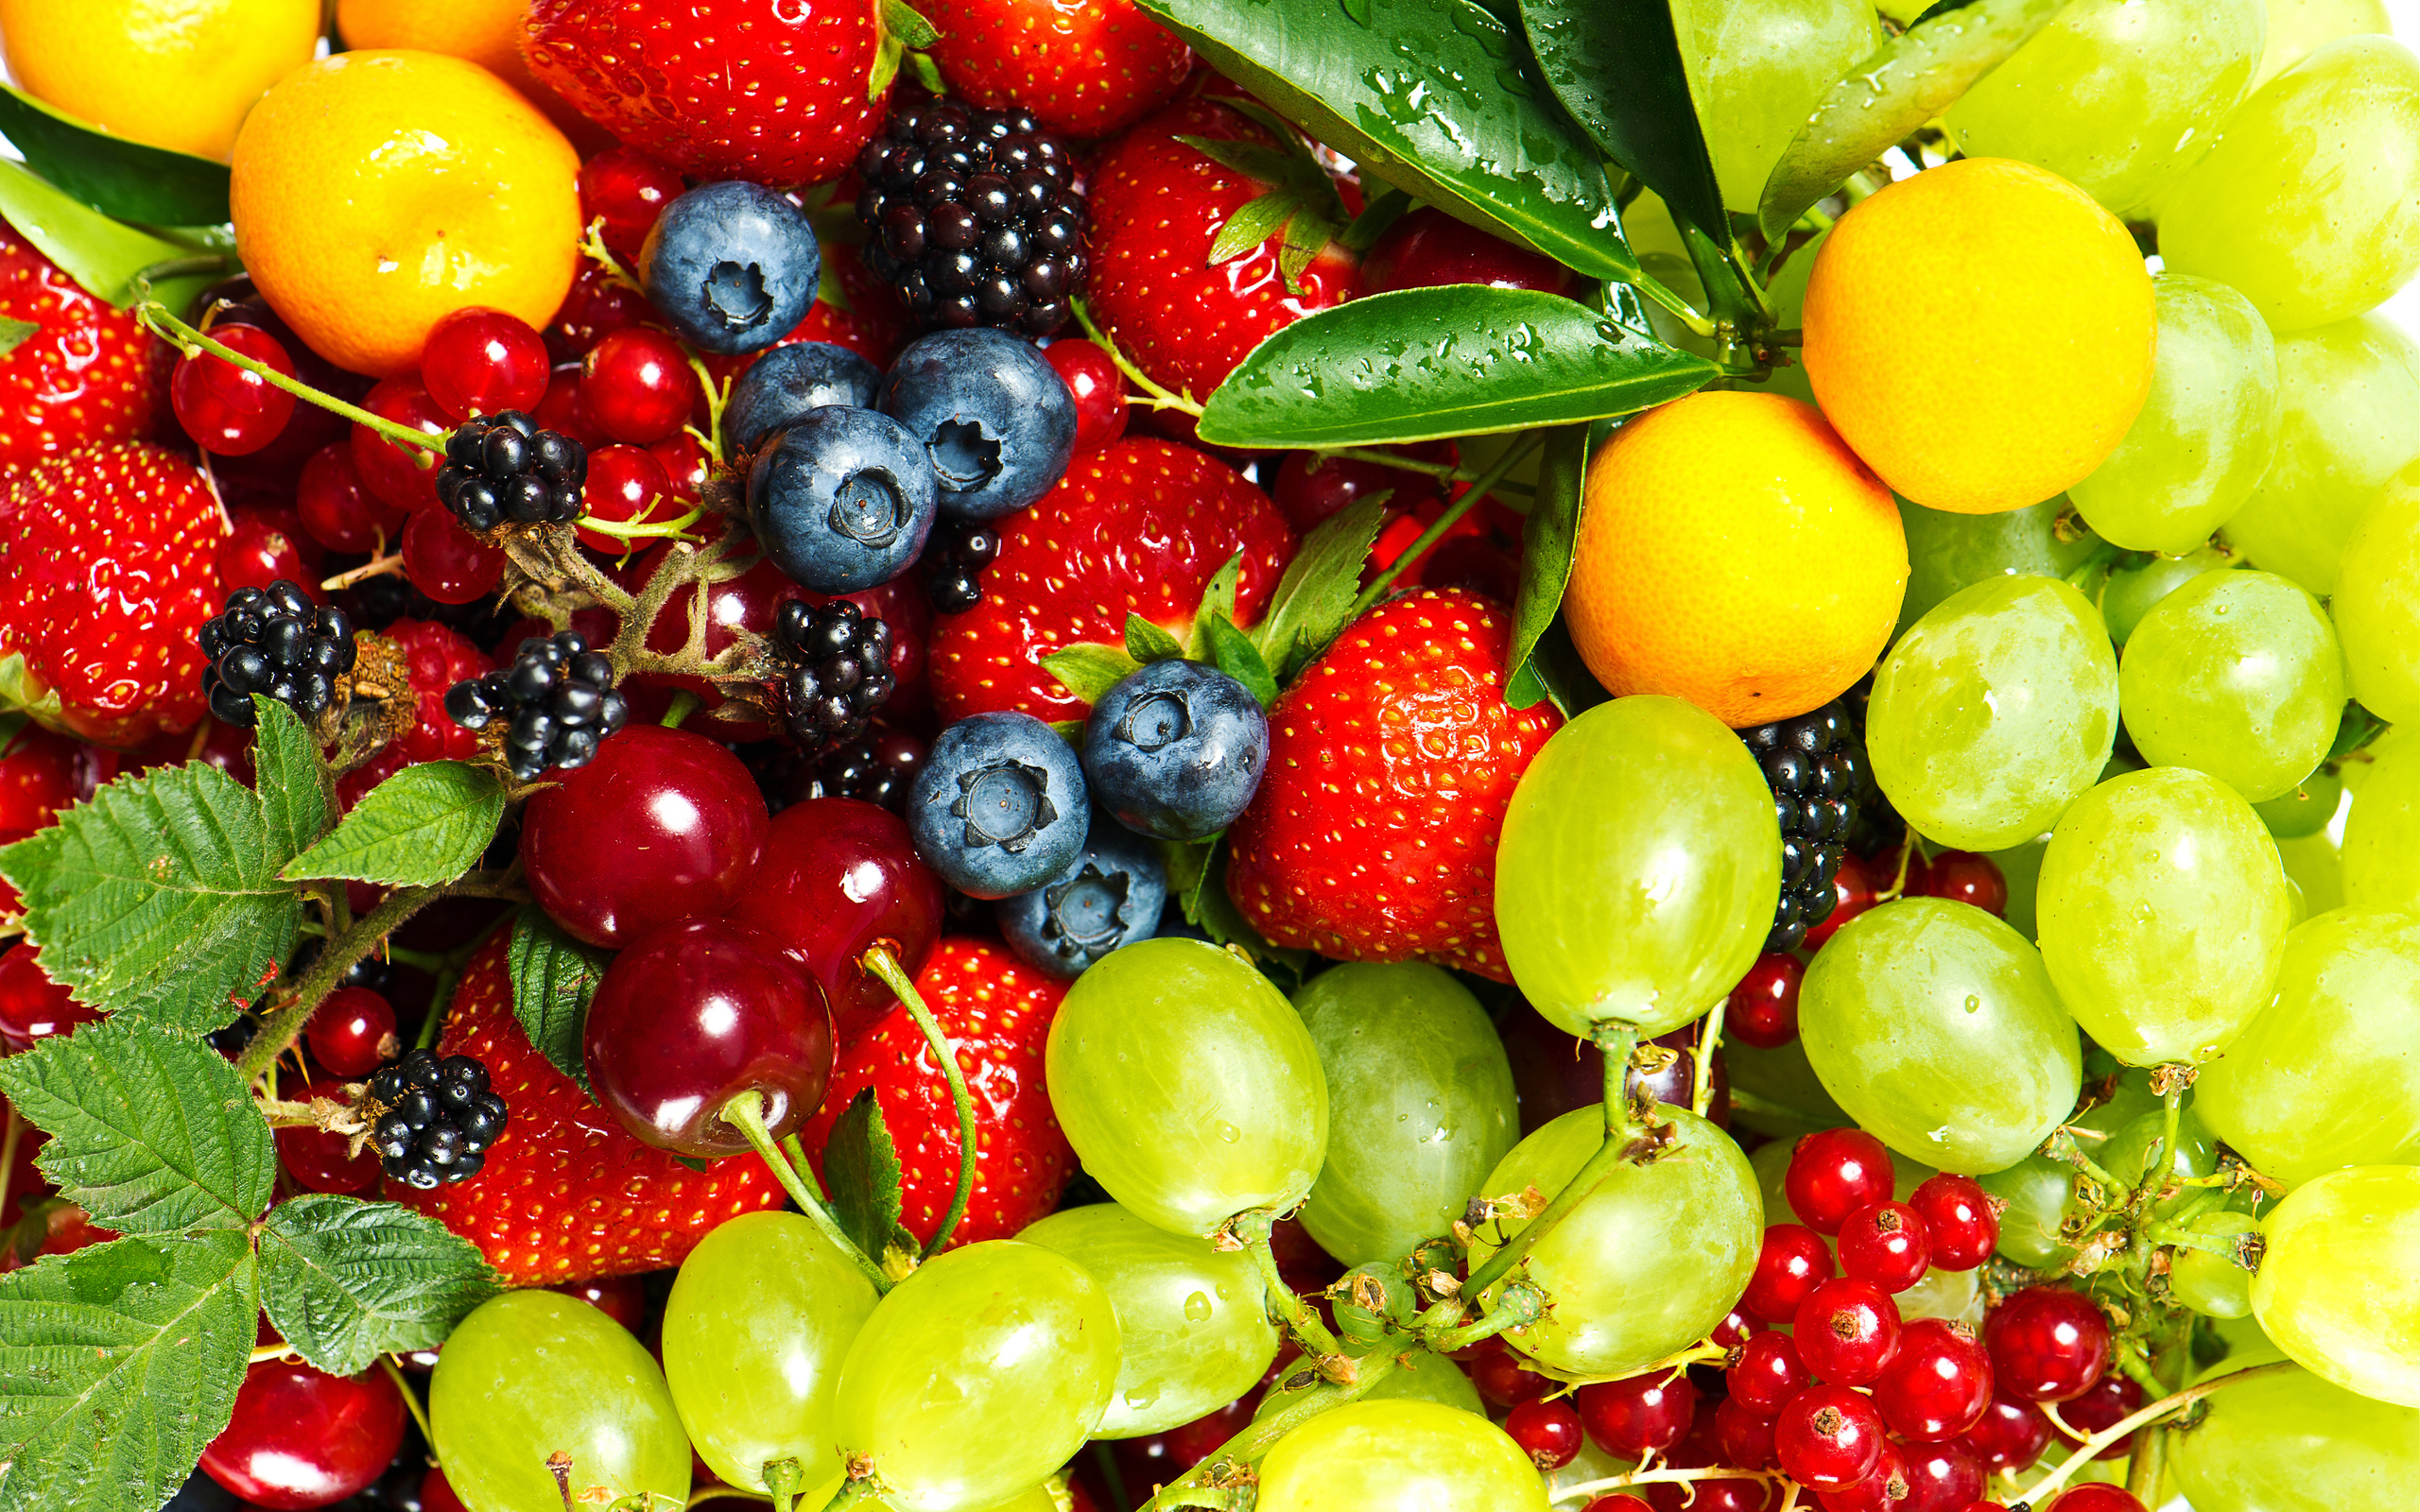 15 Outstanding HD Fruit Wallpapers   HDWallSourcecom 2560x1600